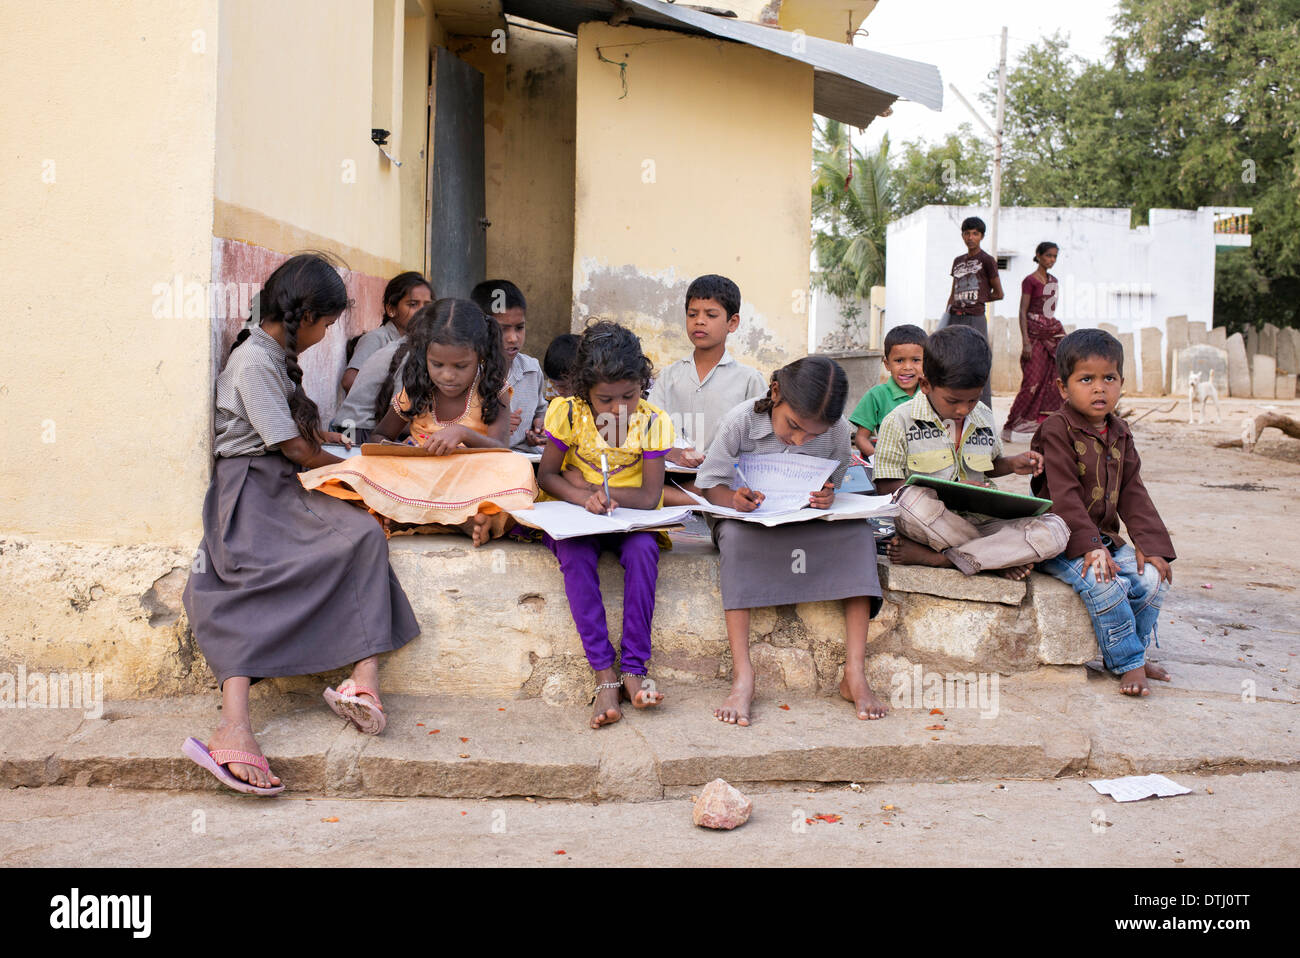 Indian Children Doing School Work Outside A Rural Indian Village House.  Andhra Pradesh, India